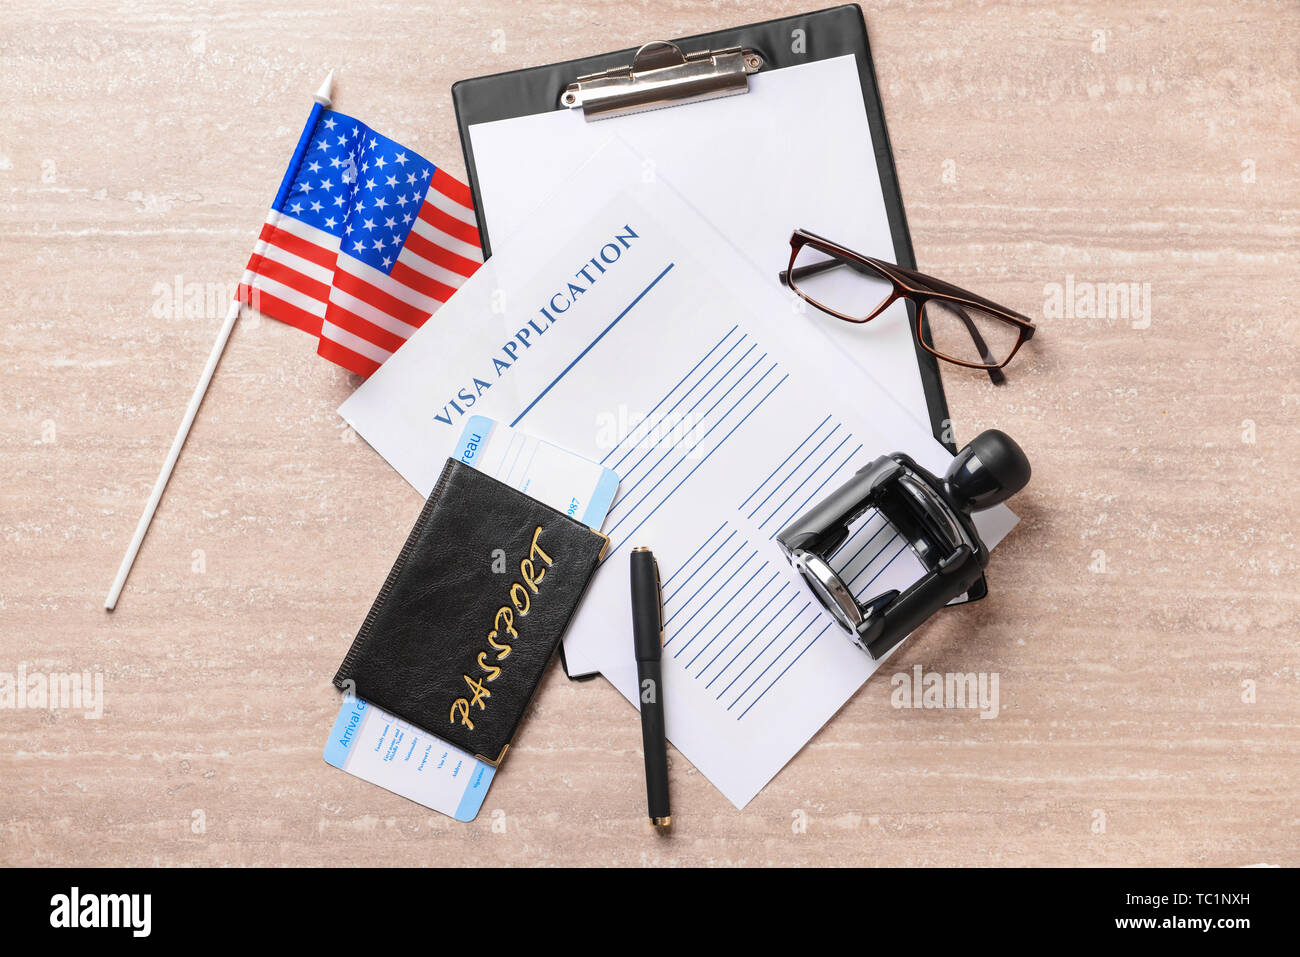 Visa Application Form Passport Stamp And Usa Flag On Table Concept Of Immigration Stock Photo Alamy